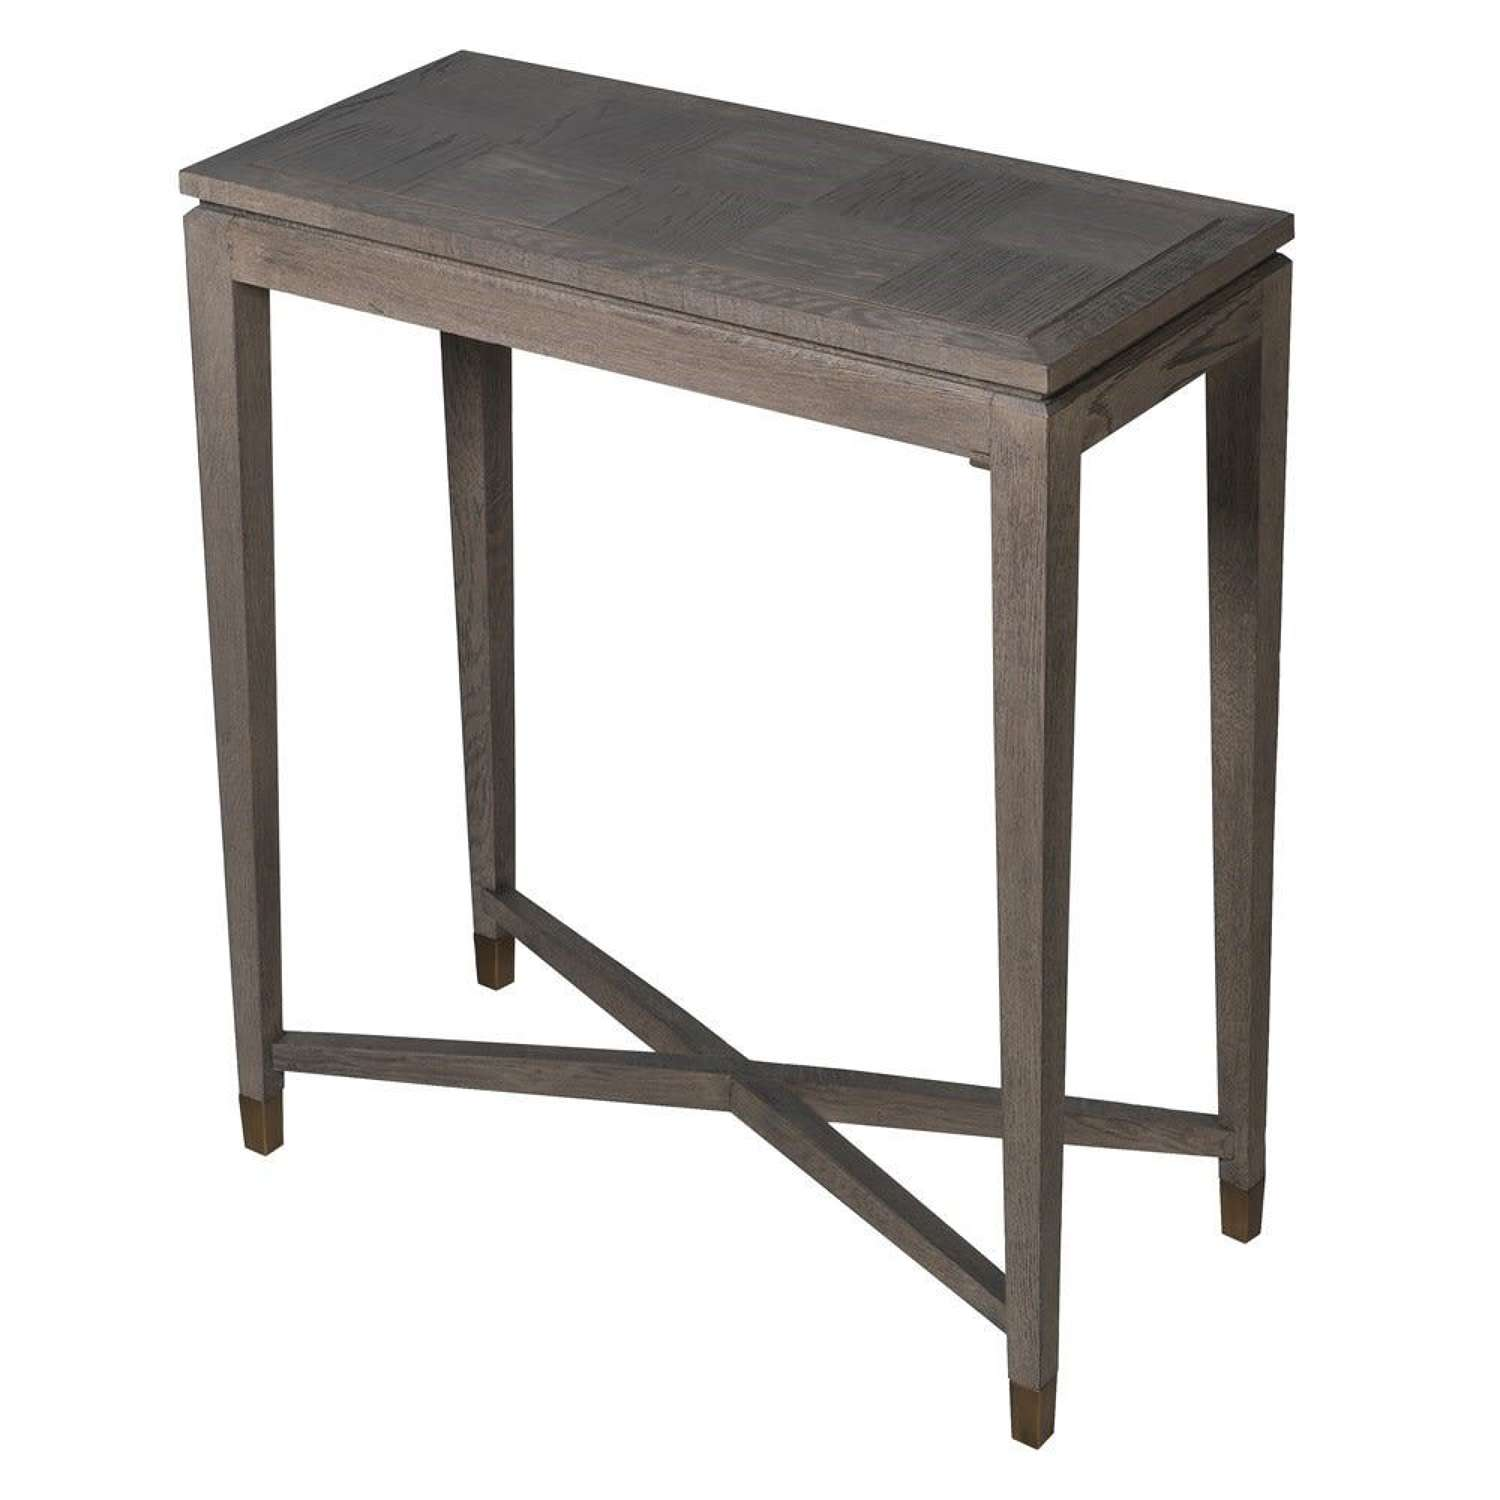 Textured Oak Console Table with Brass Inlay